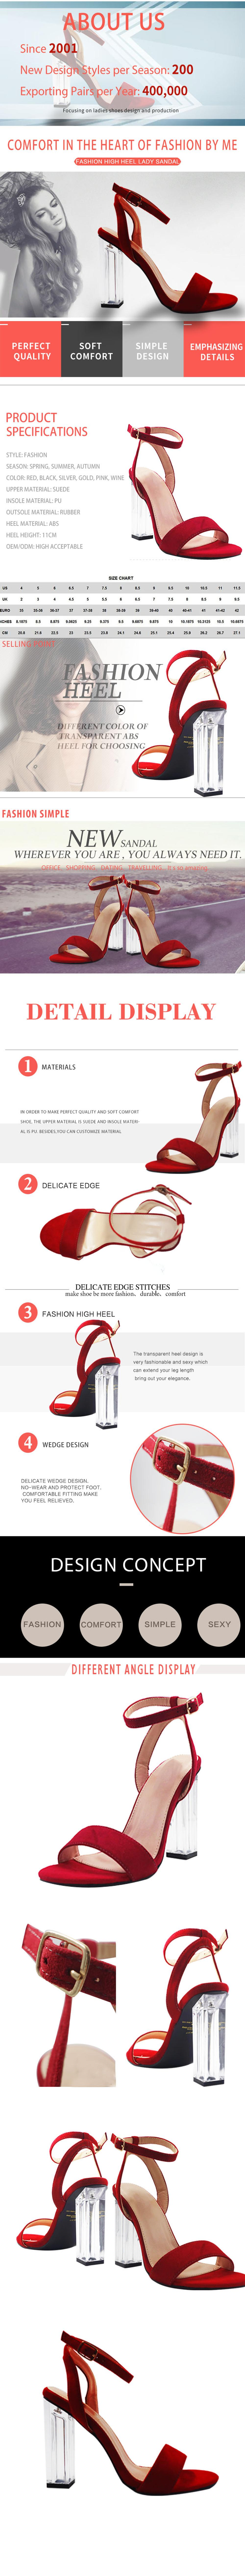 low price italian wholesale fancy new design style ladies summer party wear shoes transparent girls high heel fancy pvc sandals